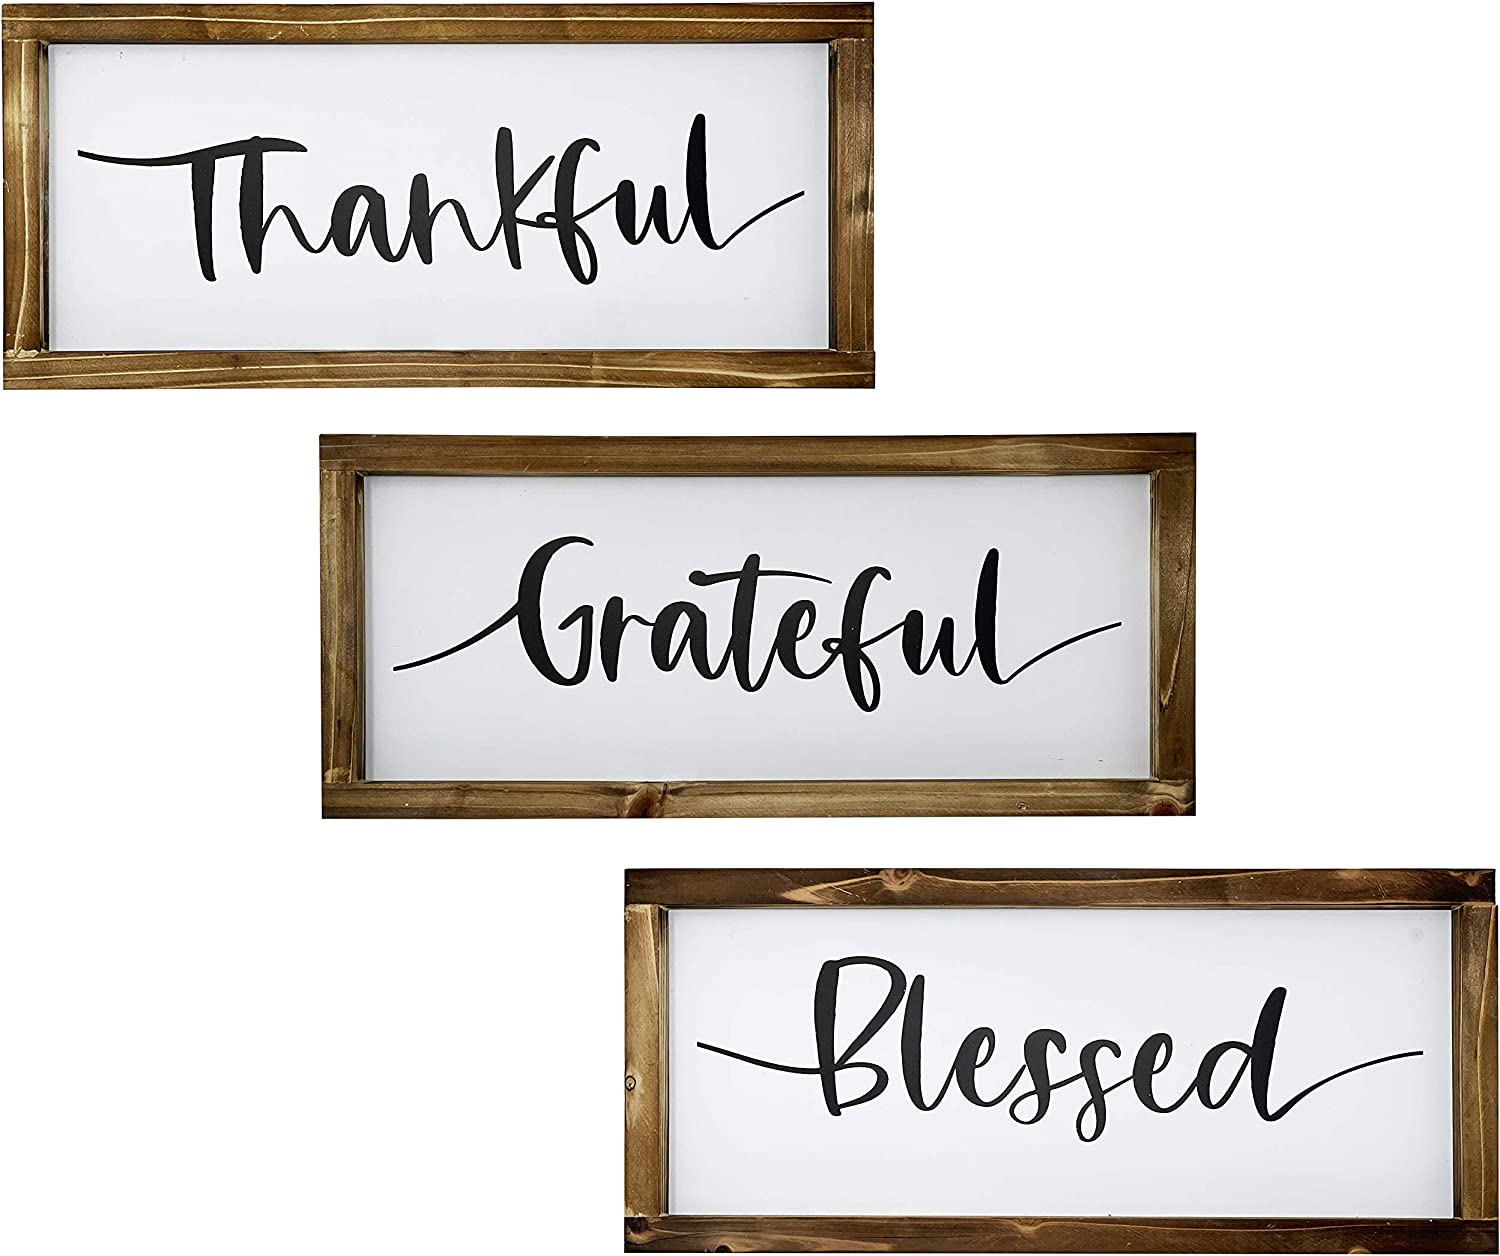 """Chiaravita 3 Piece Rustic Farmhouse Grateful Thankful Blessed Home Decor Signs - Solid Pine Wood Frame 17"""" x 7.5"""" Inspirational Wall Art Signs for Living Room, Dining Room, Kitchen,"""